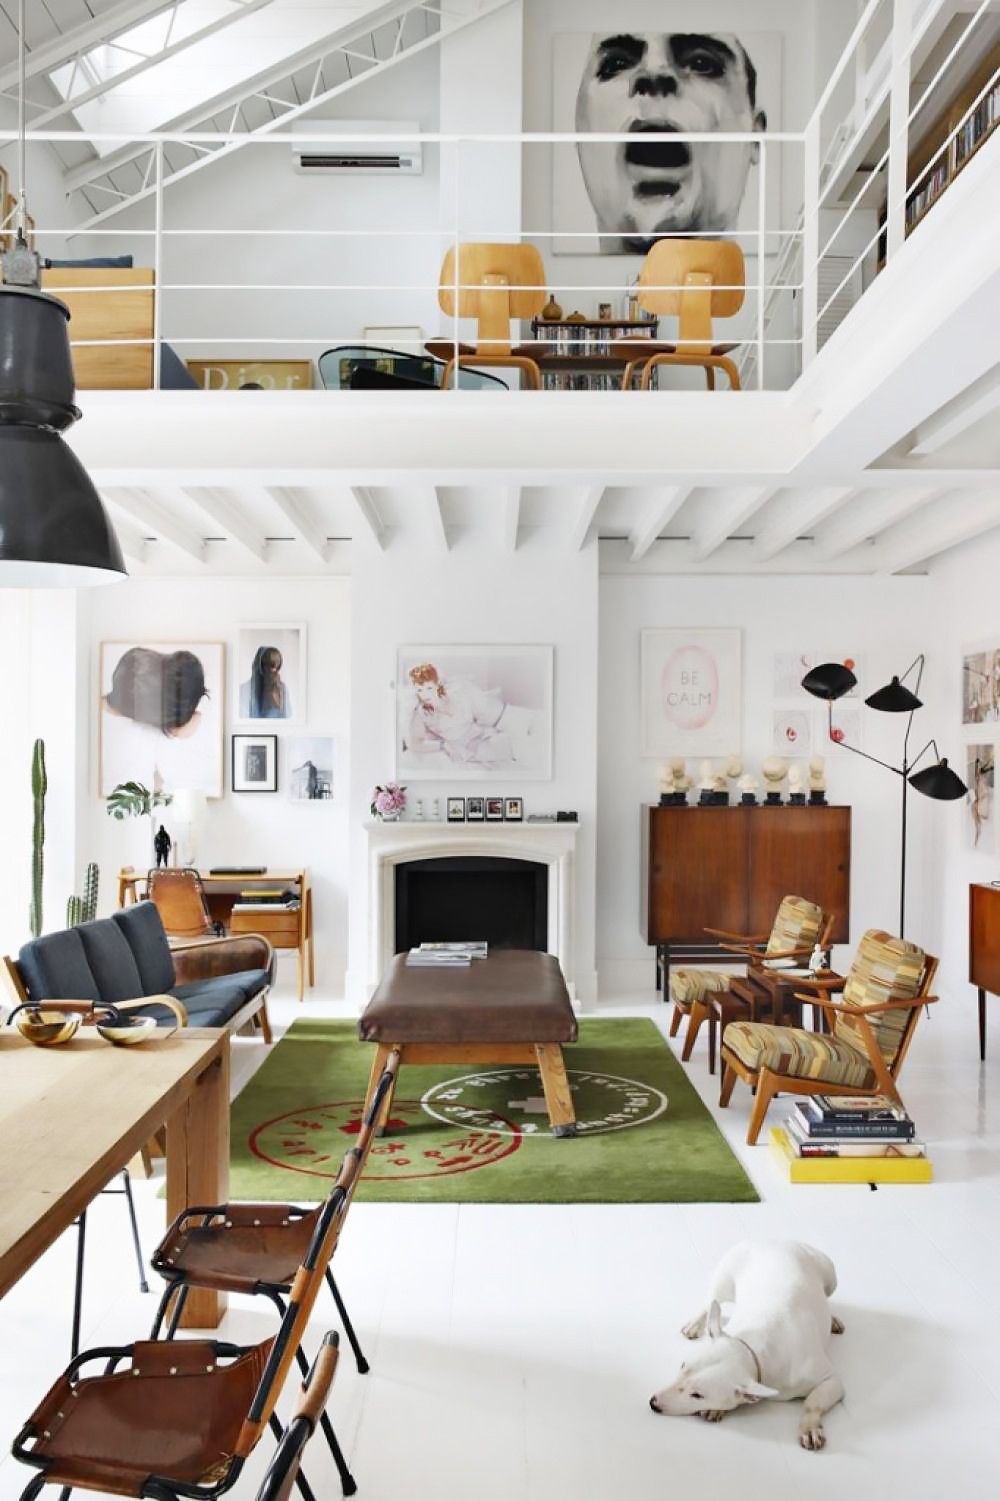 How to Decorate Like Wes Anderson via